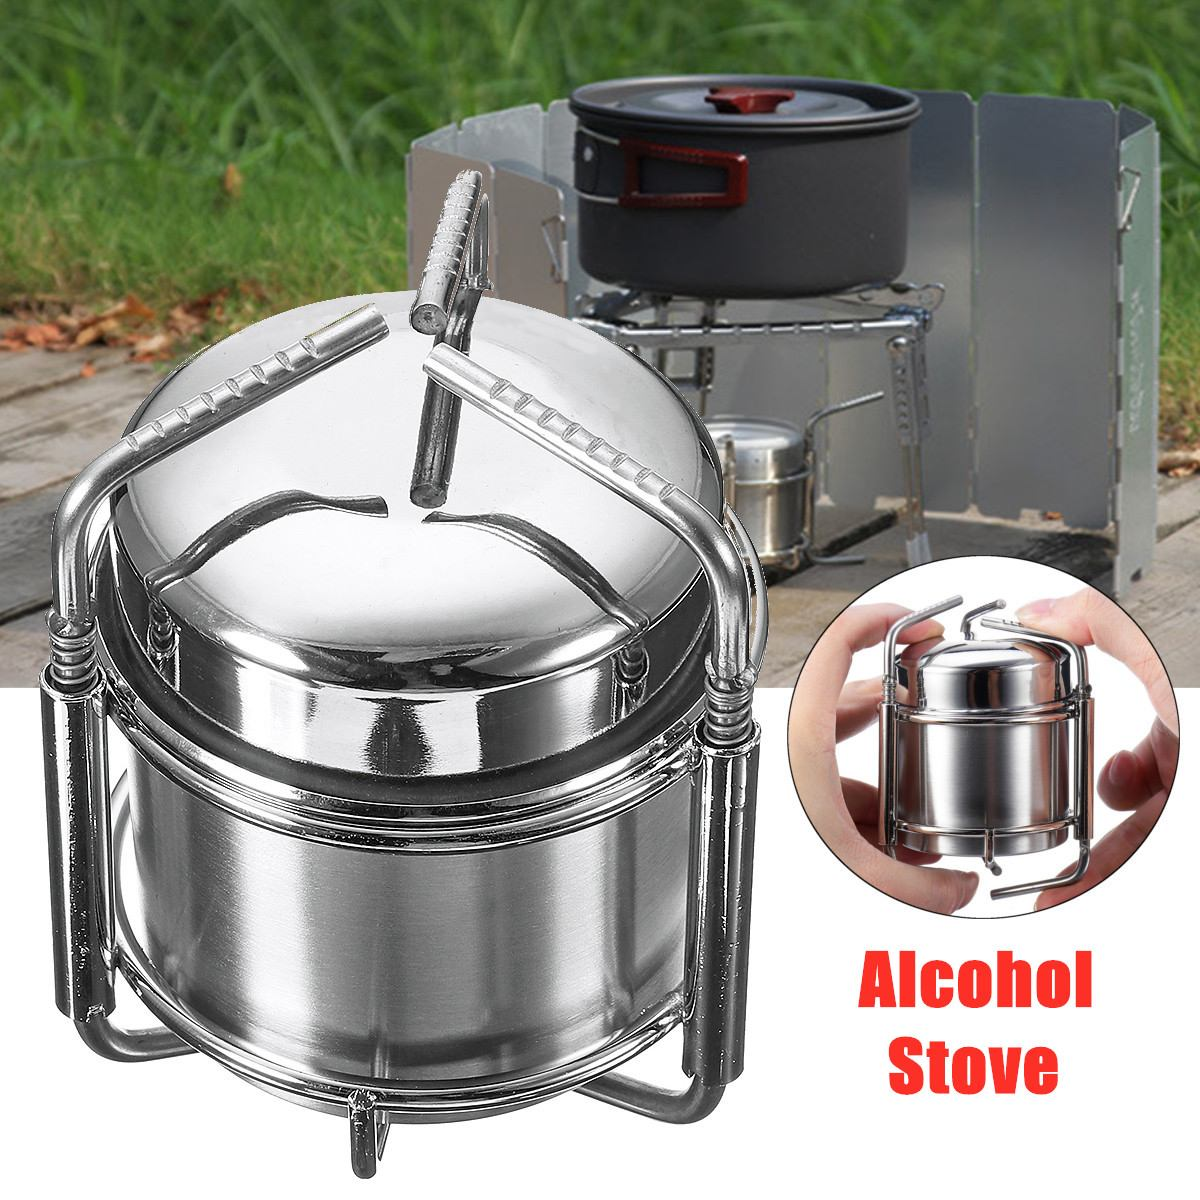 Camping Outdoor Alcohol Stove Portable Picnic BBQ Cooking Stove Stainless Steel Cookware Storage Bag Hiking Backpacking Cooker